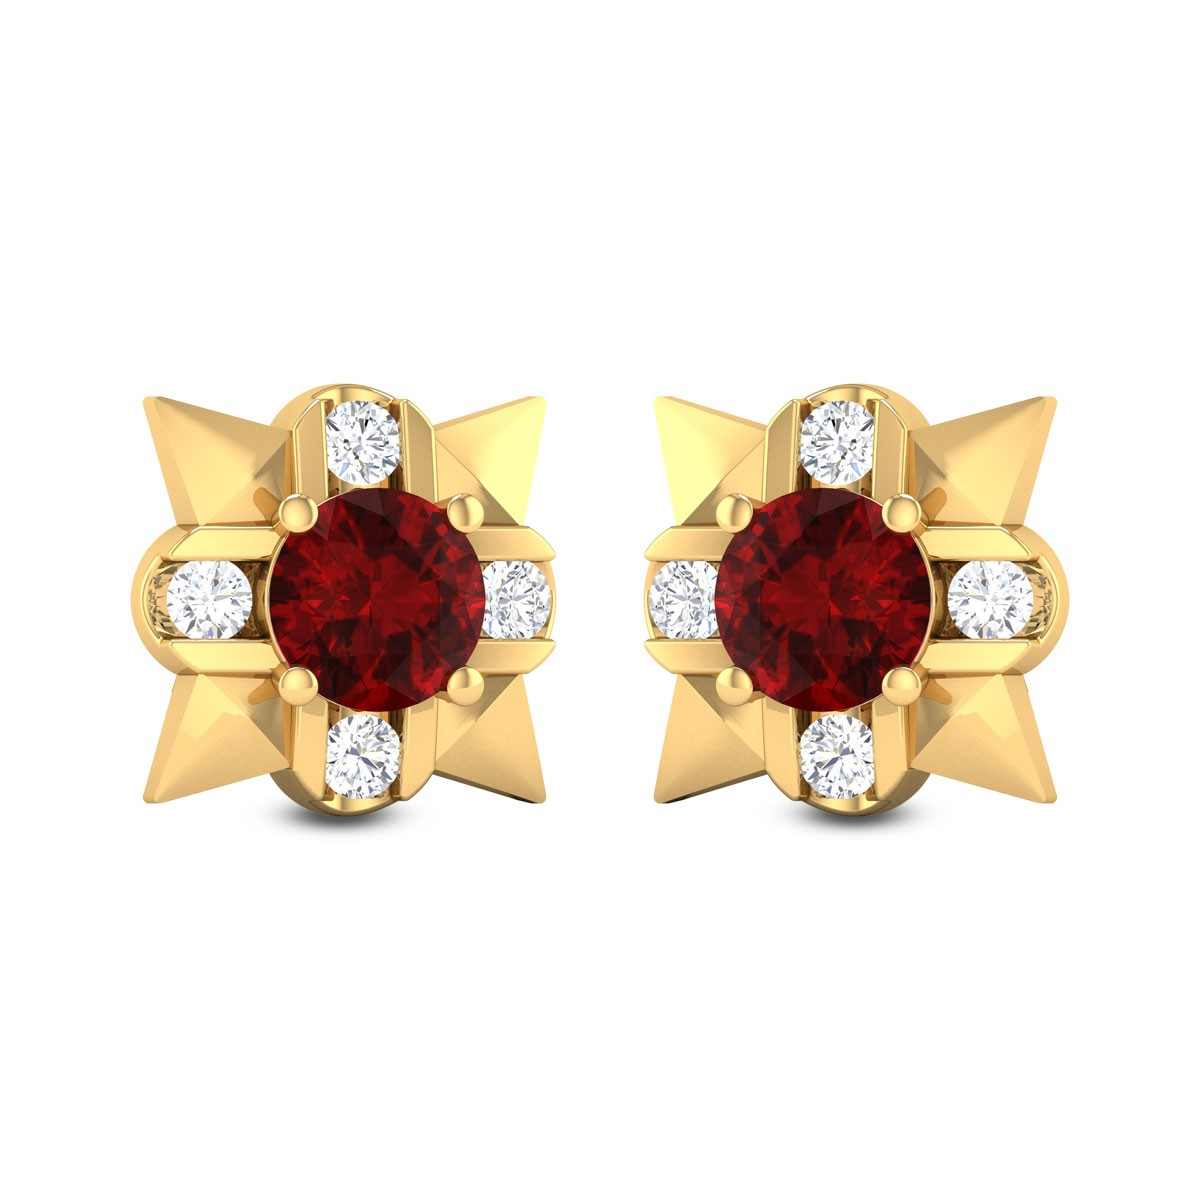 Sadhika Ruby Diamond Stud Earrings